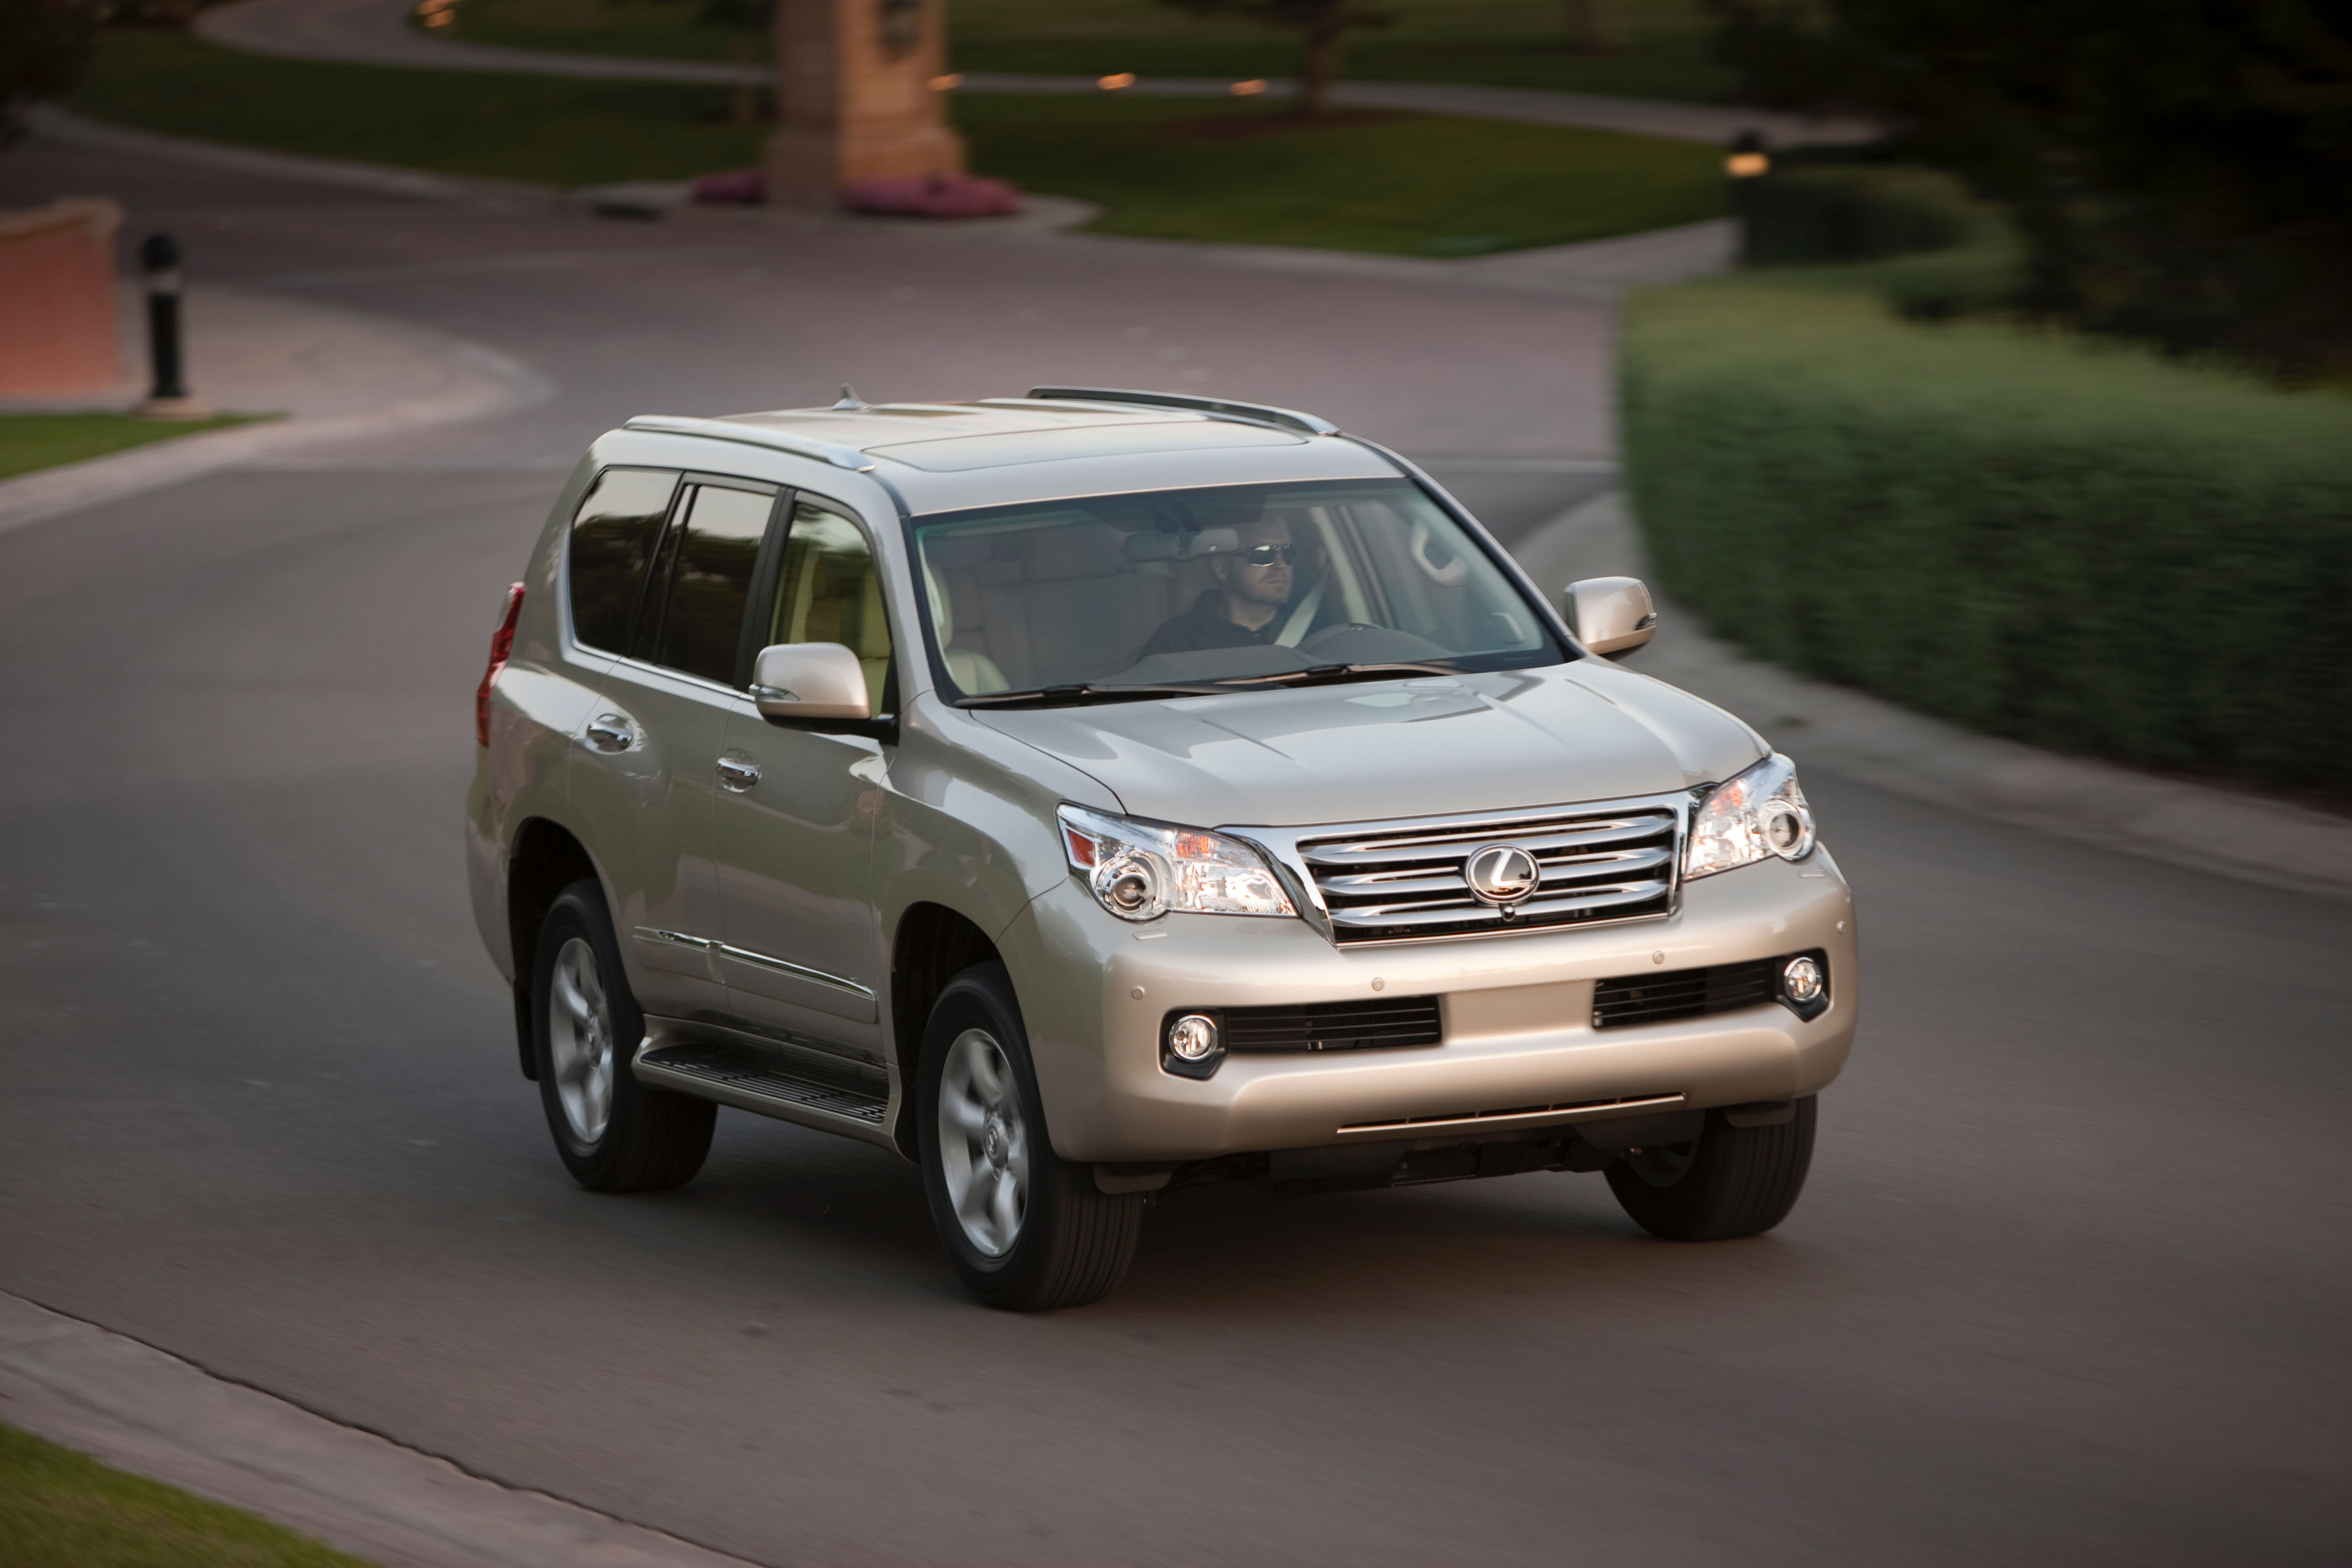 It's Official  Toyota Recalls 2010 Lexus GX 460 on Vehicle